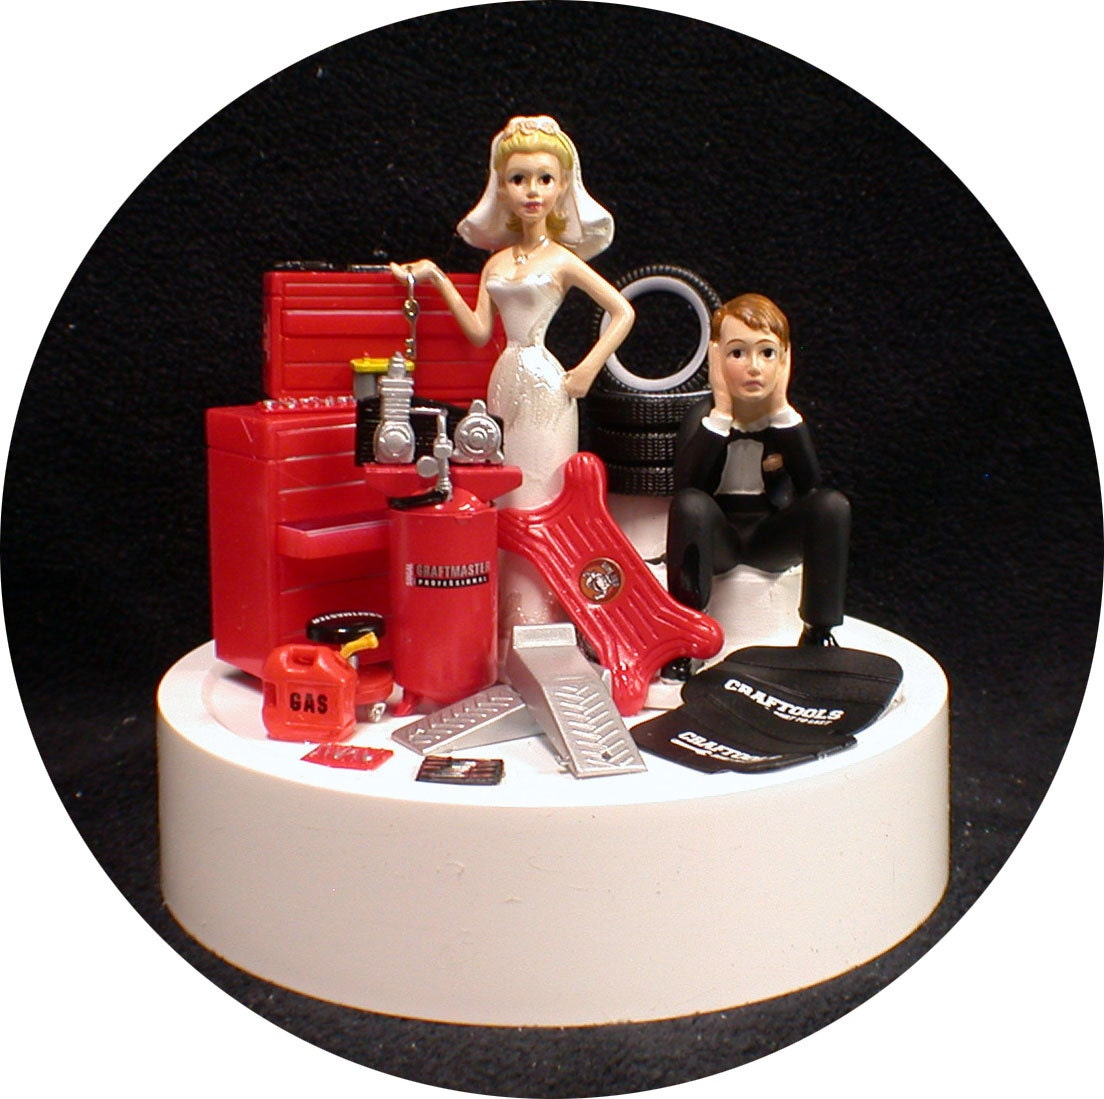 Car AUTO MECHANIC Wedding Cake Topper Key Bride & Groom Tool